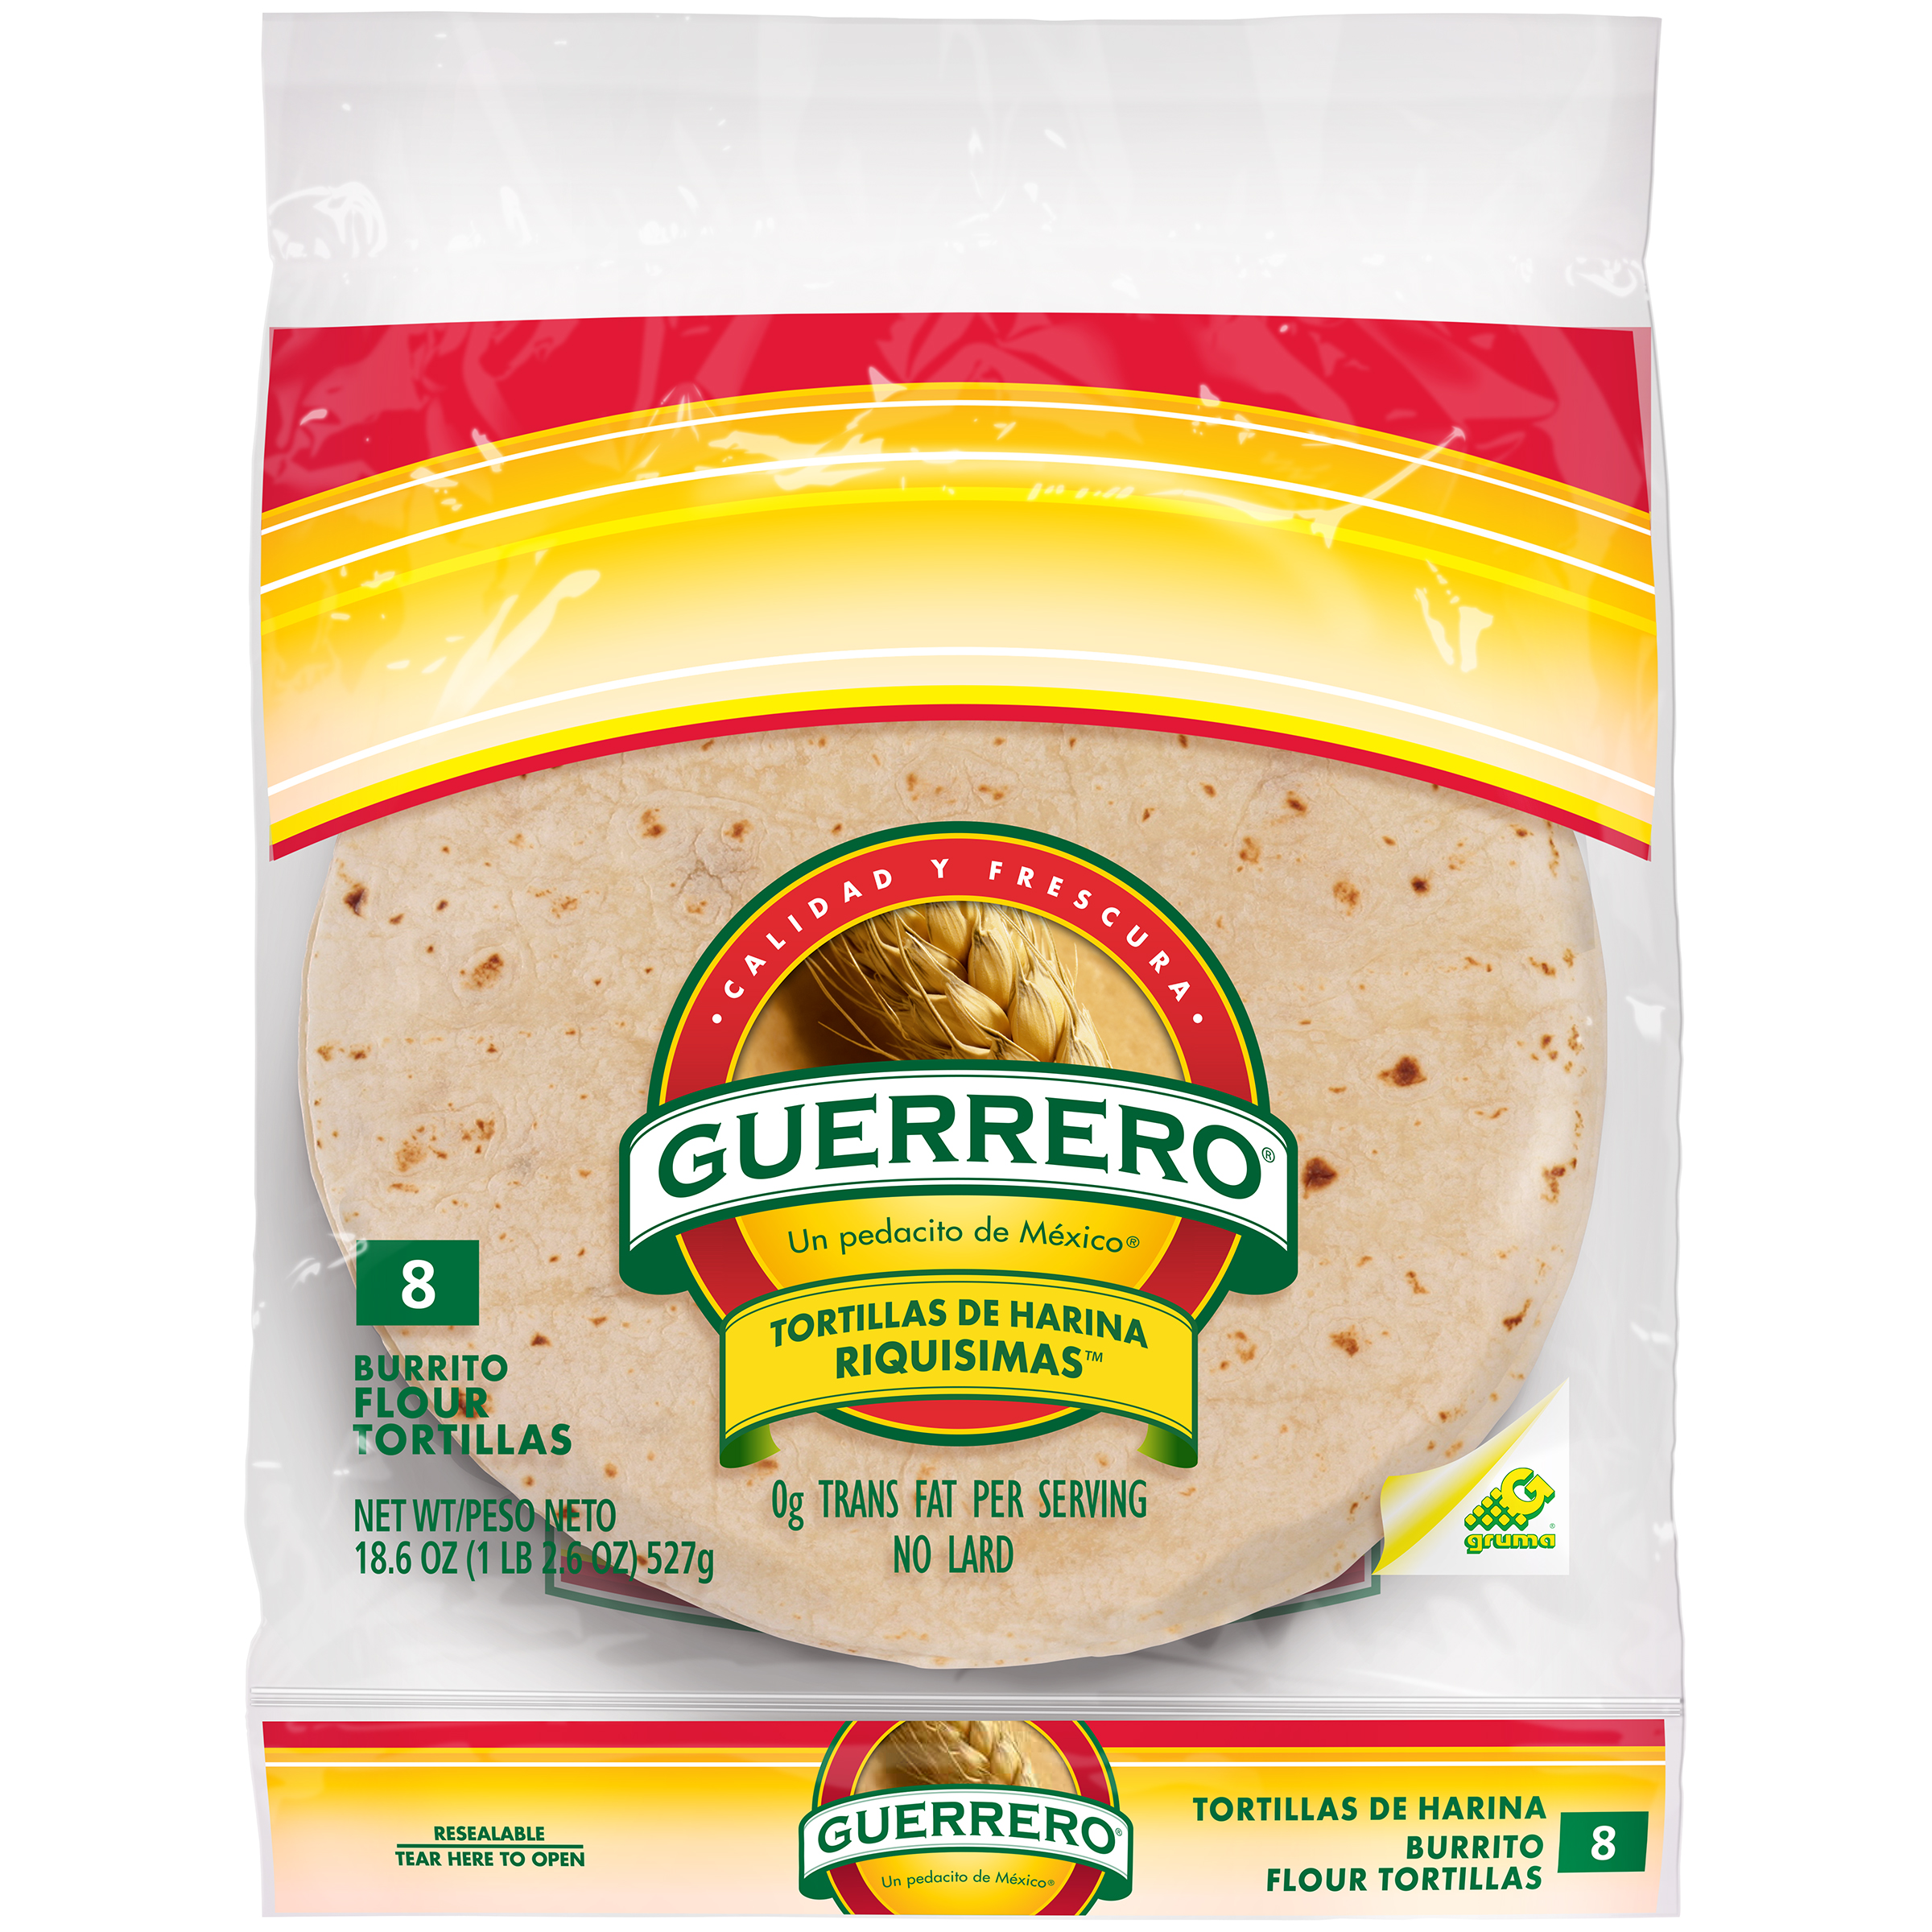 Guerrero® Burrito Four Tortillas 18.6 oz. Bag